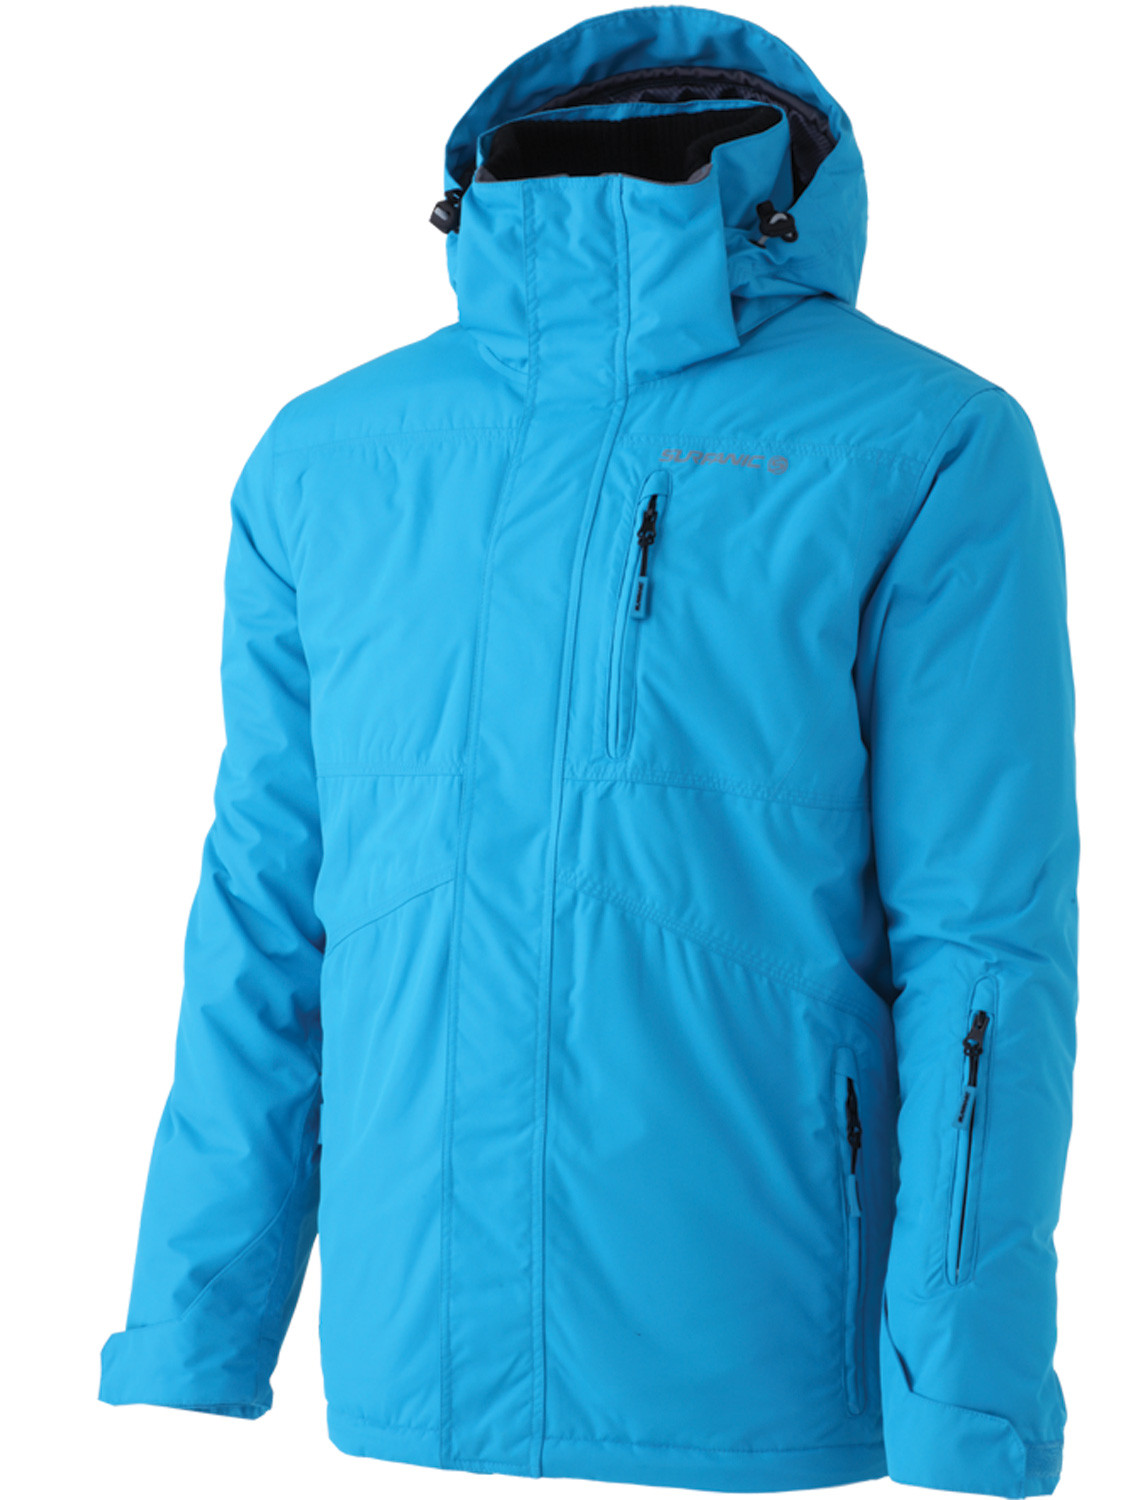 Arma Surftex Jacket